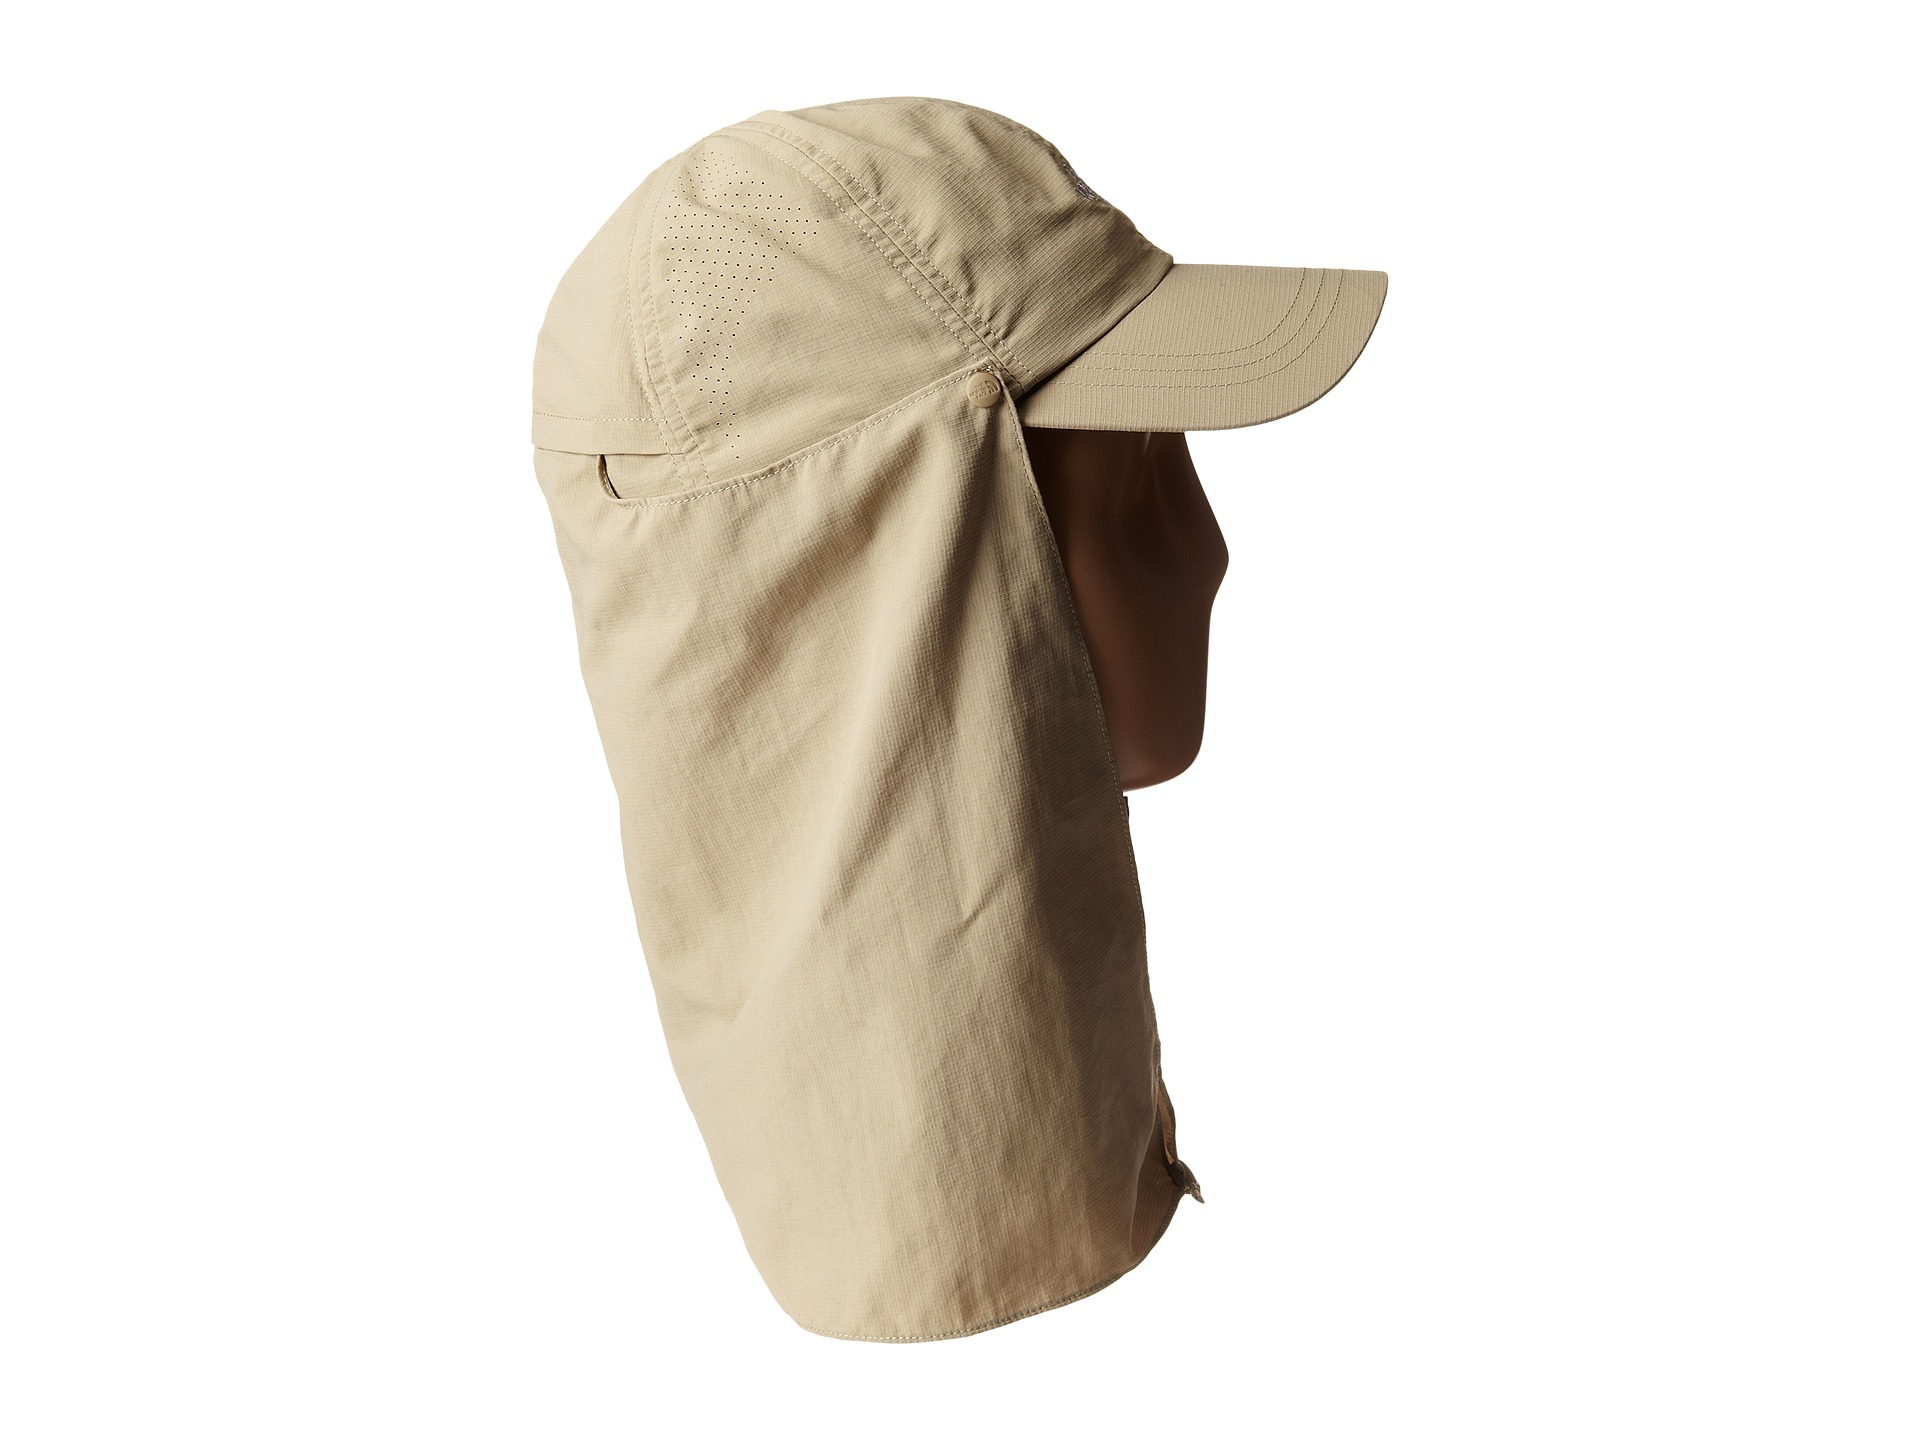 510a07310fa Lyst - The North Face Sun Shield Ball Cap in Natural